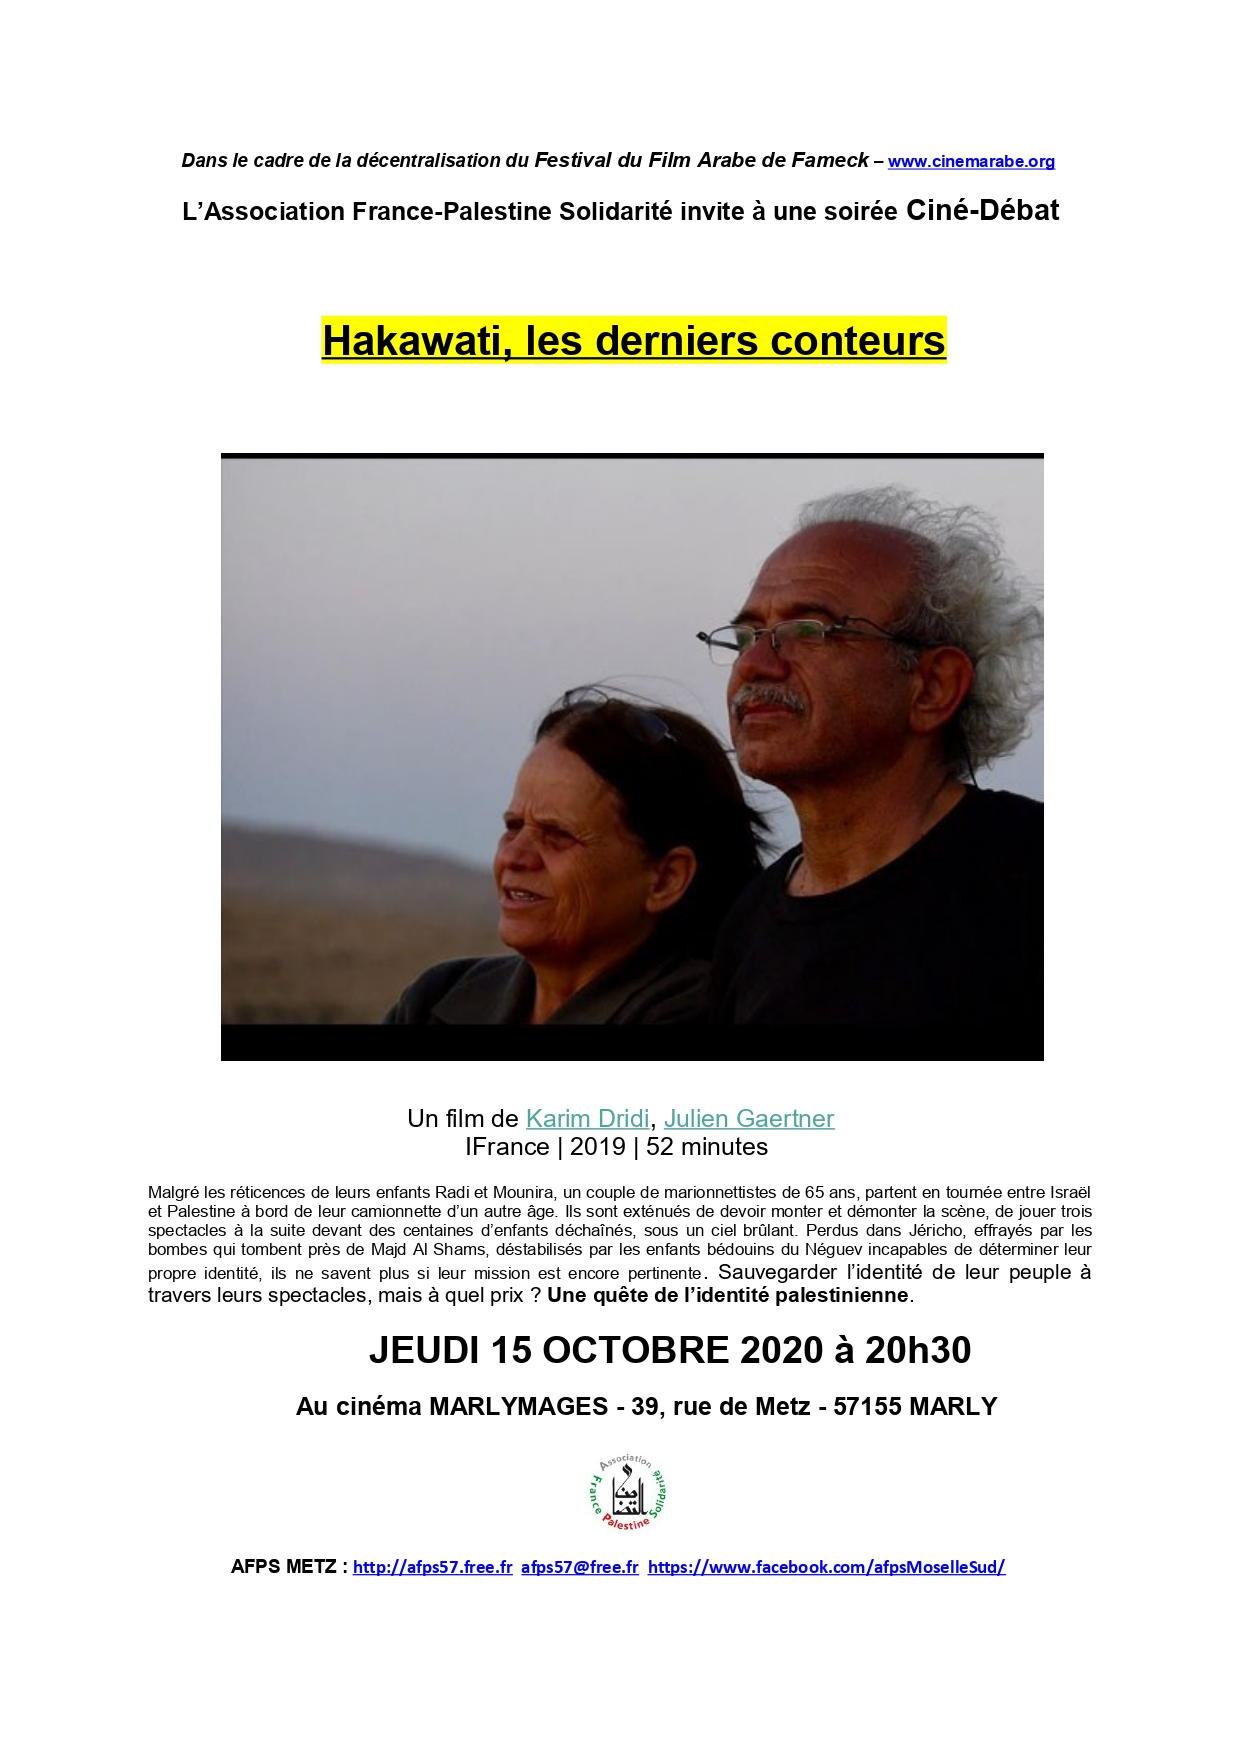 Tract de la projection du film Hakawati à Marly